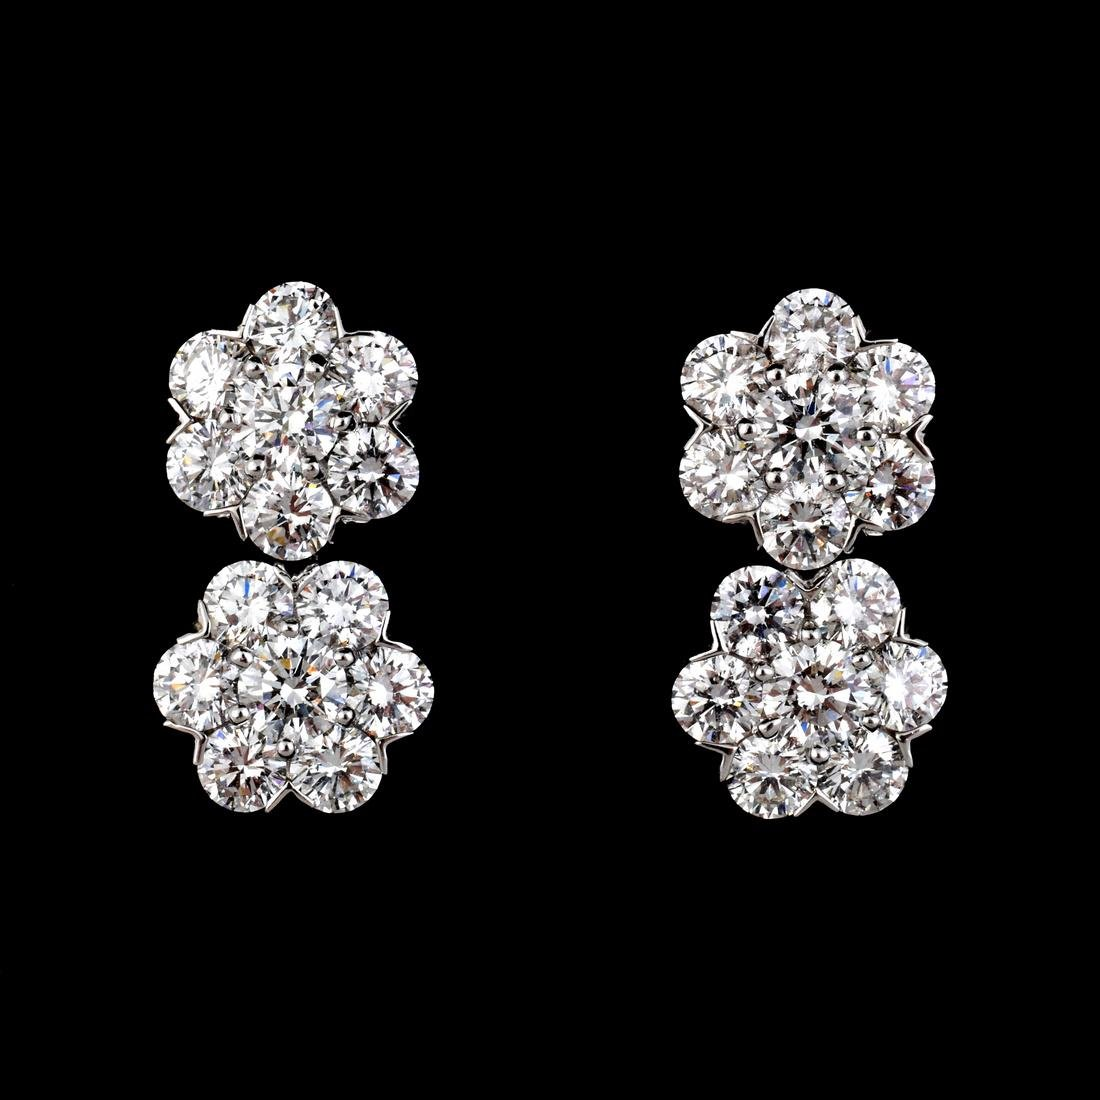 Van Cleef & Arpels 18K Gold & Diamond Estate Earrings